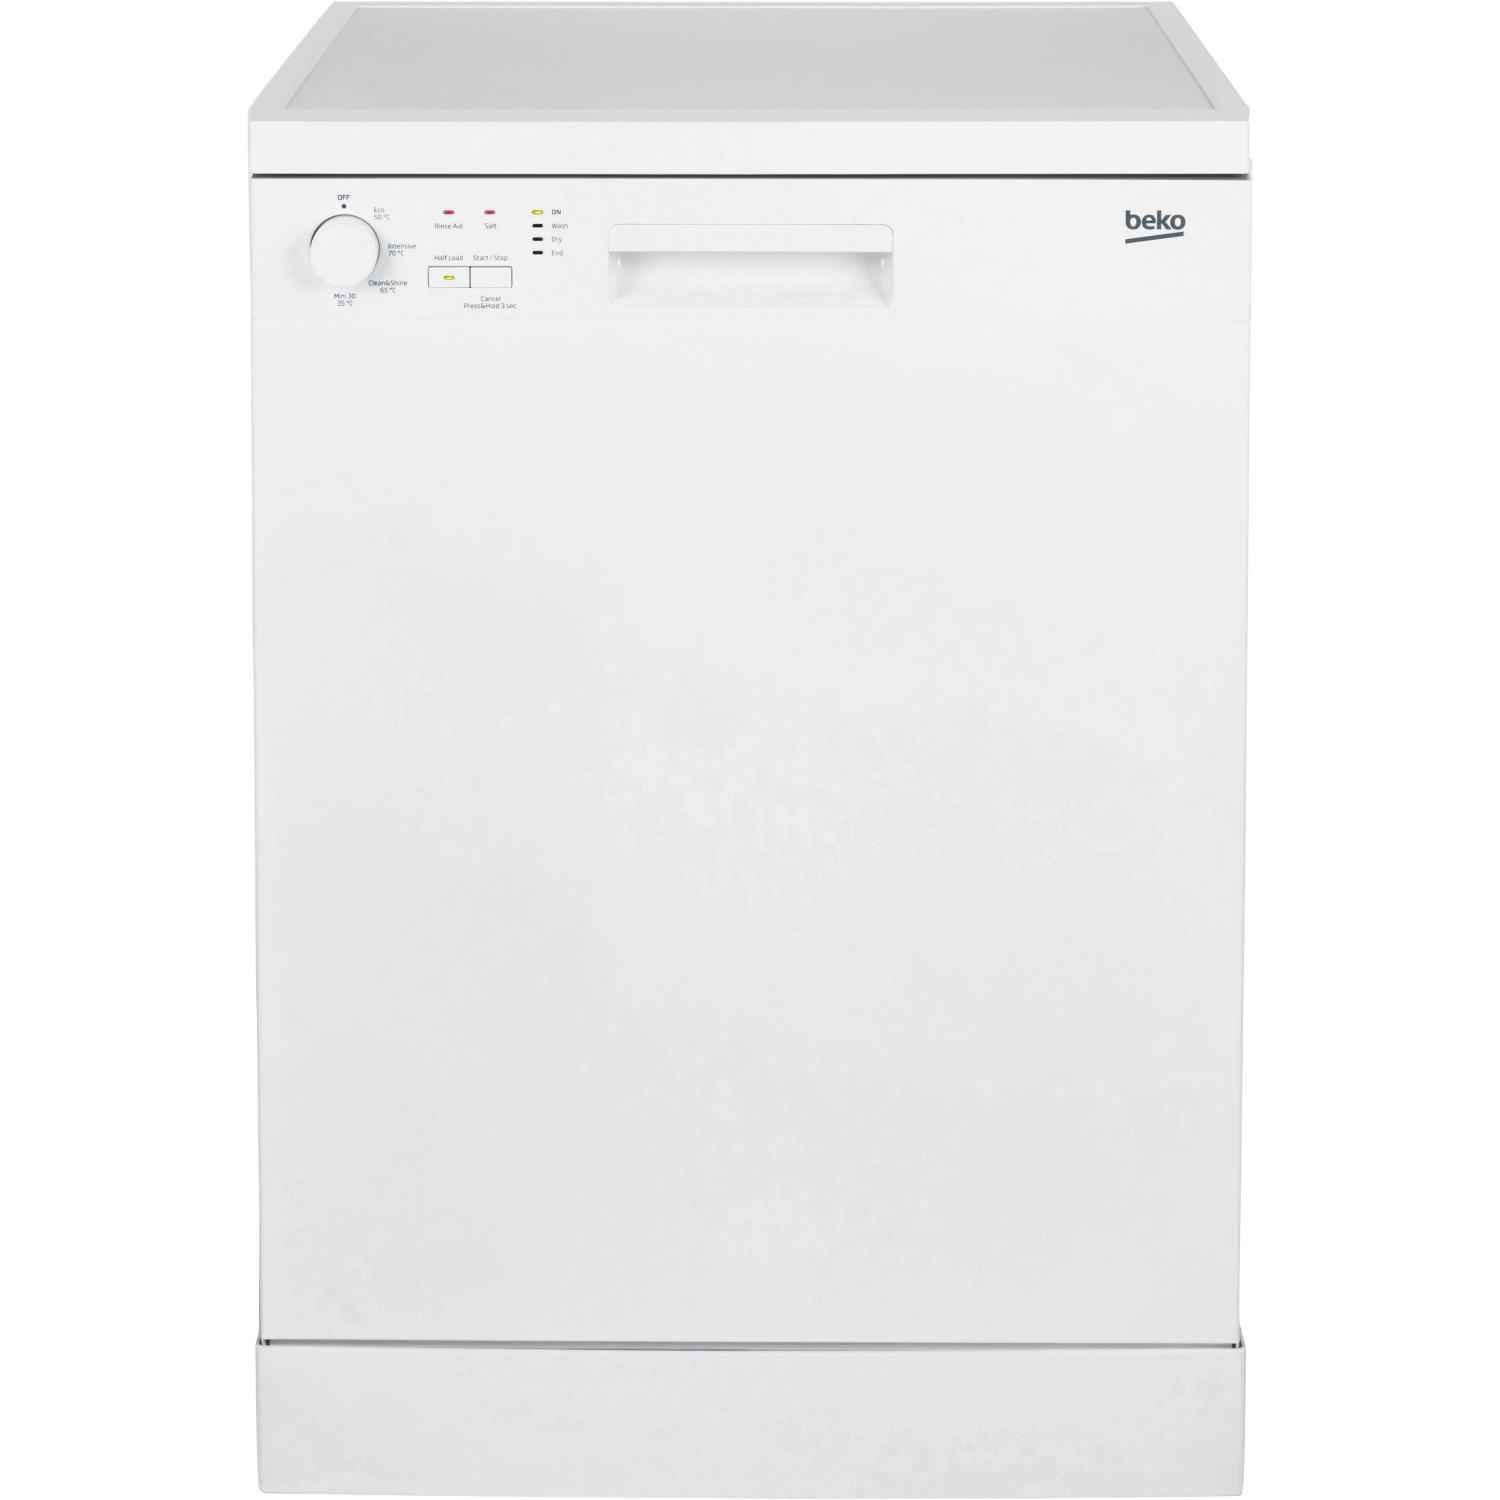 0072ae53314 Beko DFN04C11W Full Size Dishwasher – White – A+ Rated | Pooles ...